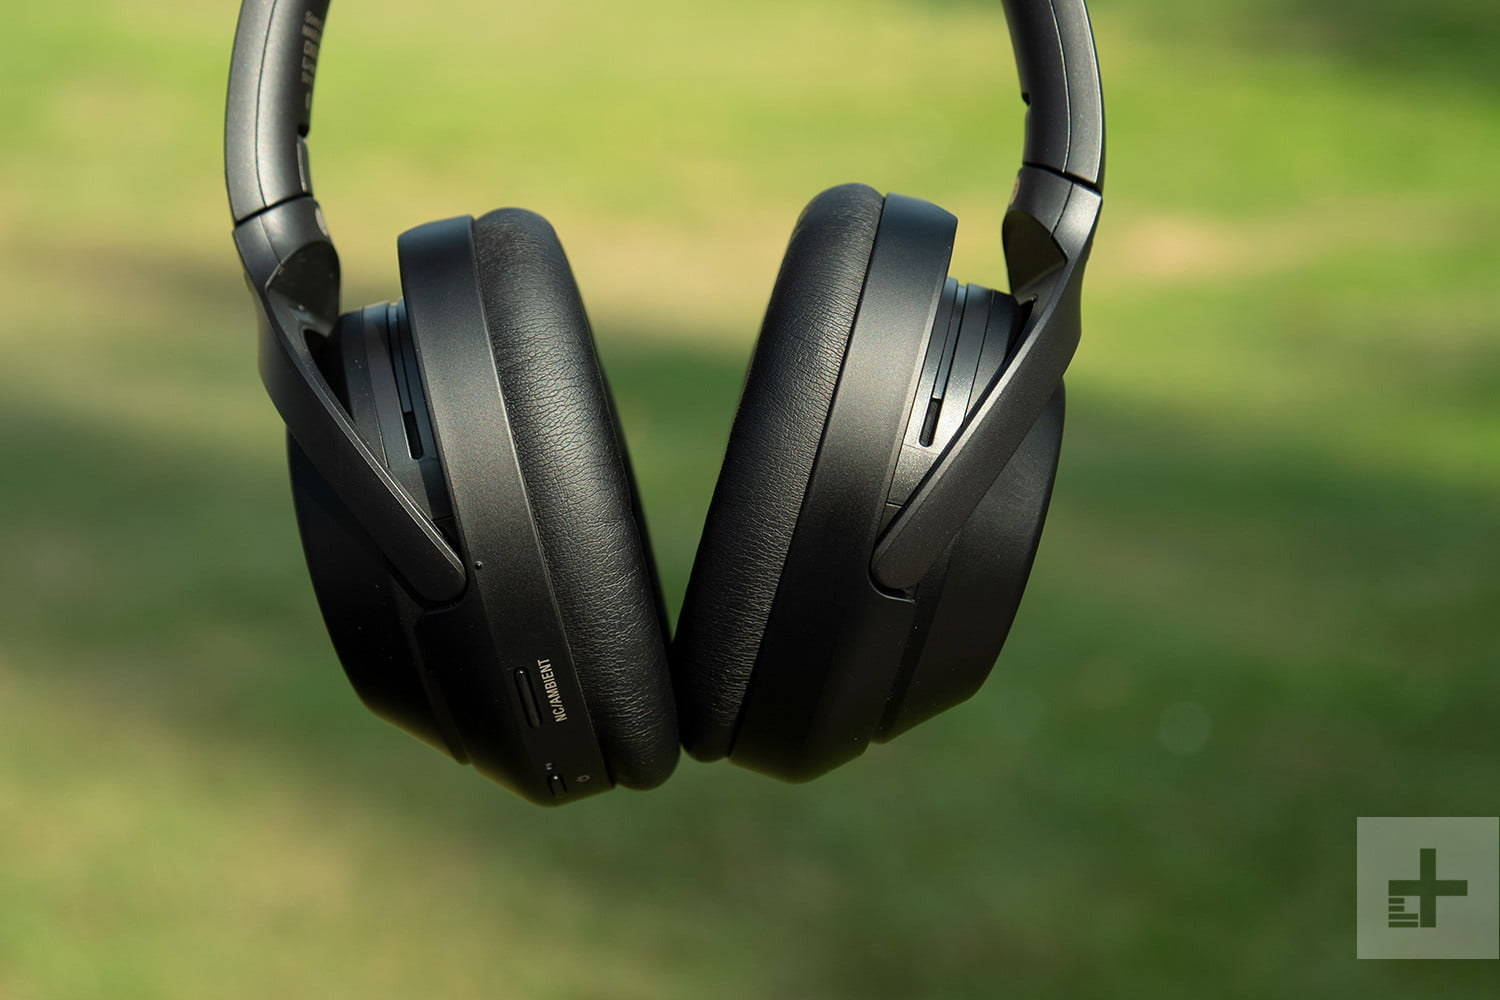 sony wh-1000x headphones cup detail